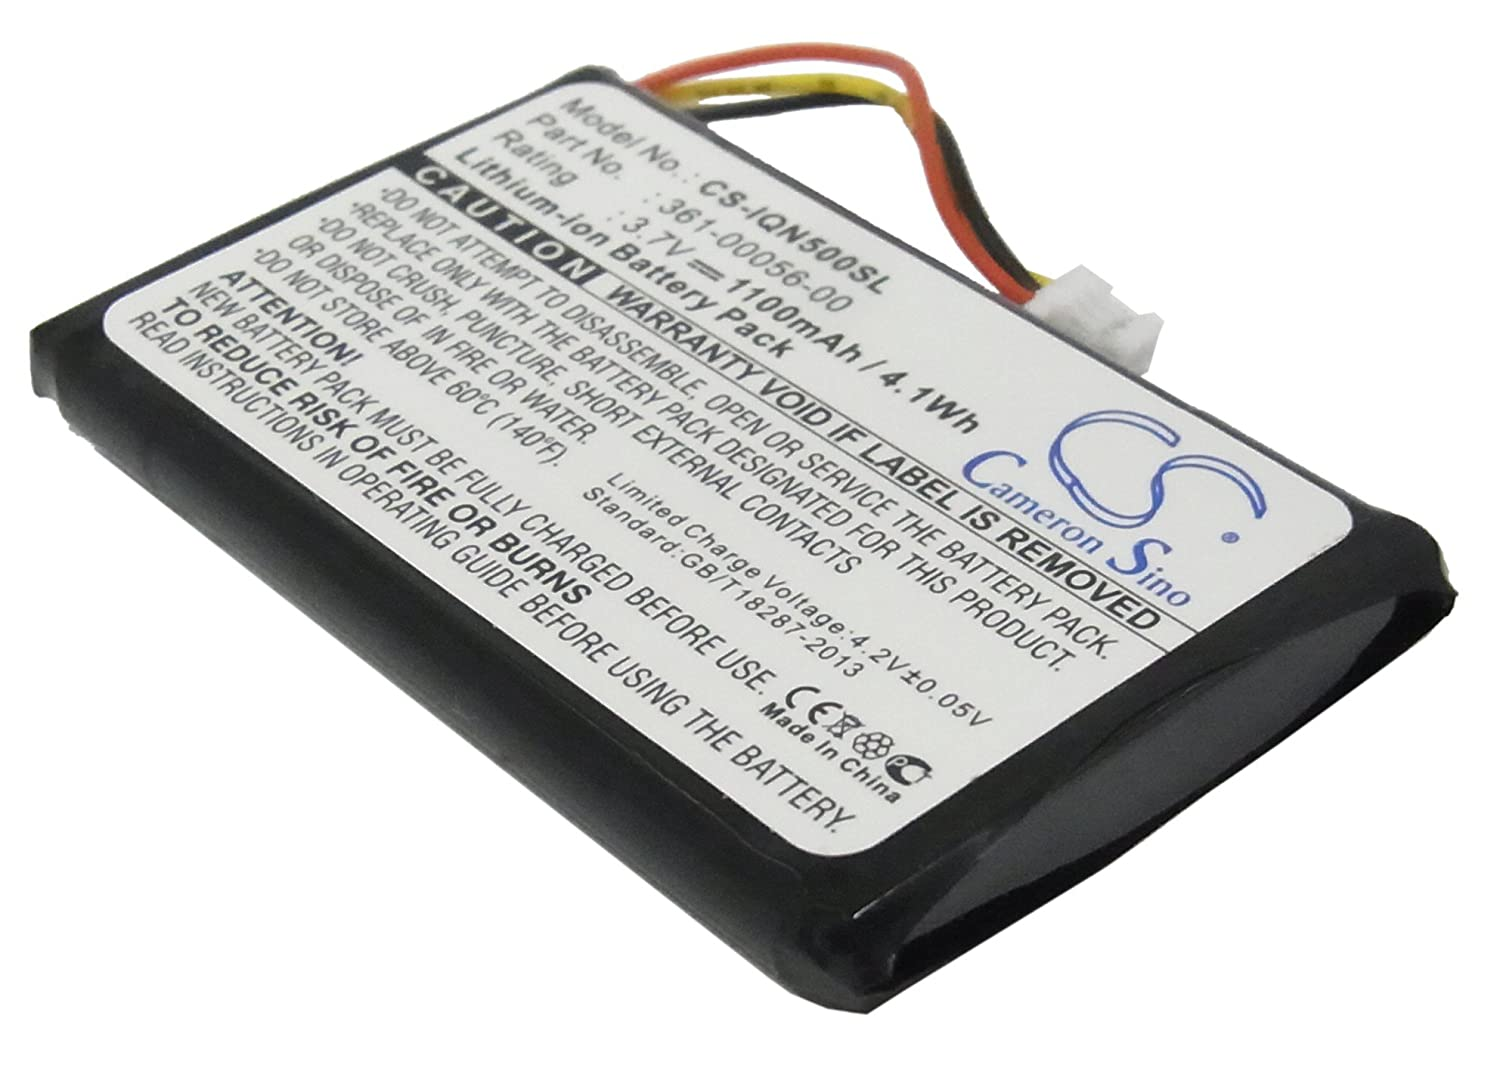 VINTRONS Replacement Battery For GARMIN Nuvi 40LM, Nuvi 50, Nuvi 50LM, Nuvi 40